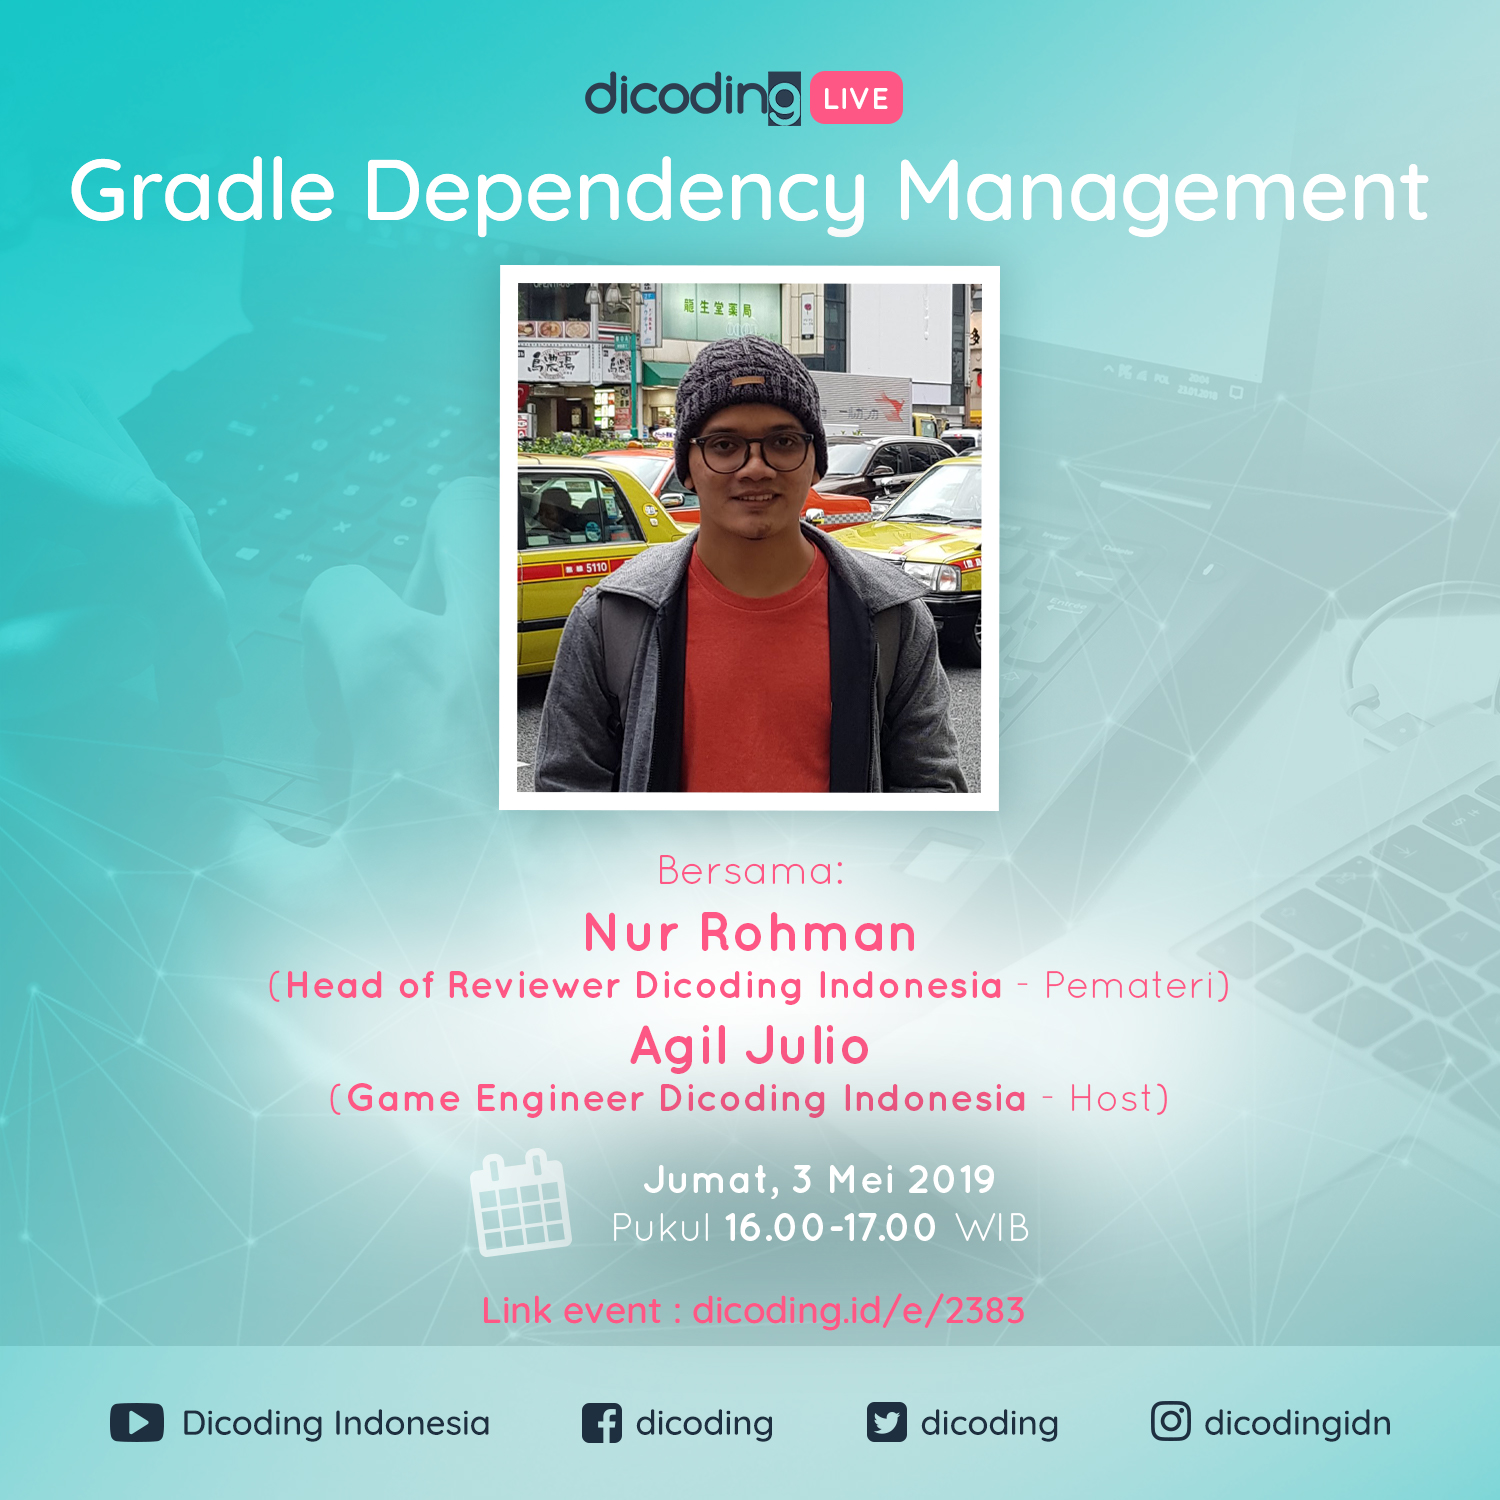 [Dicoding Live] - Gradle Dependency Management